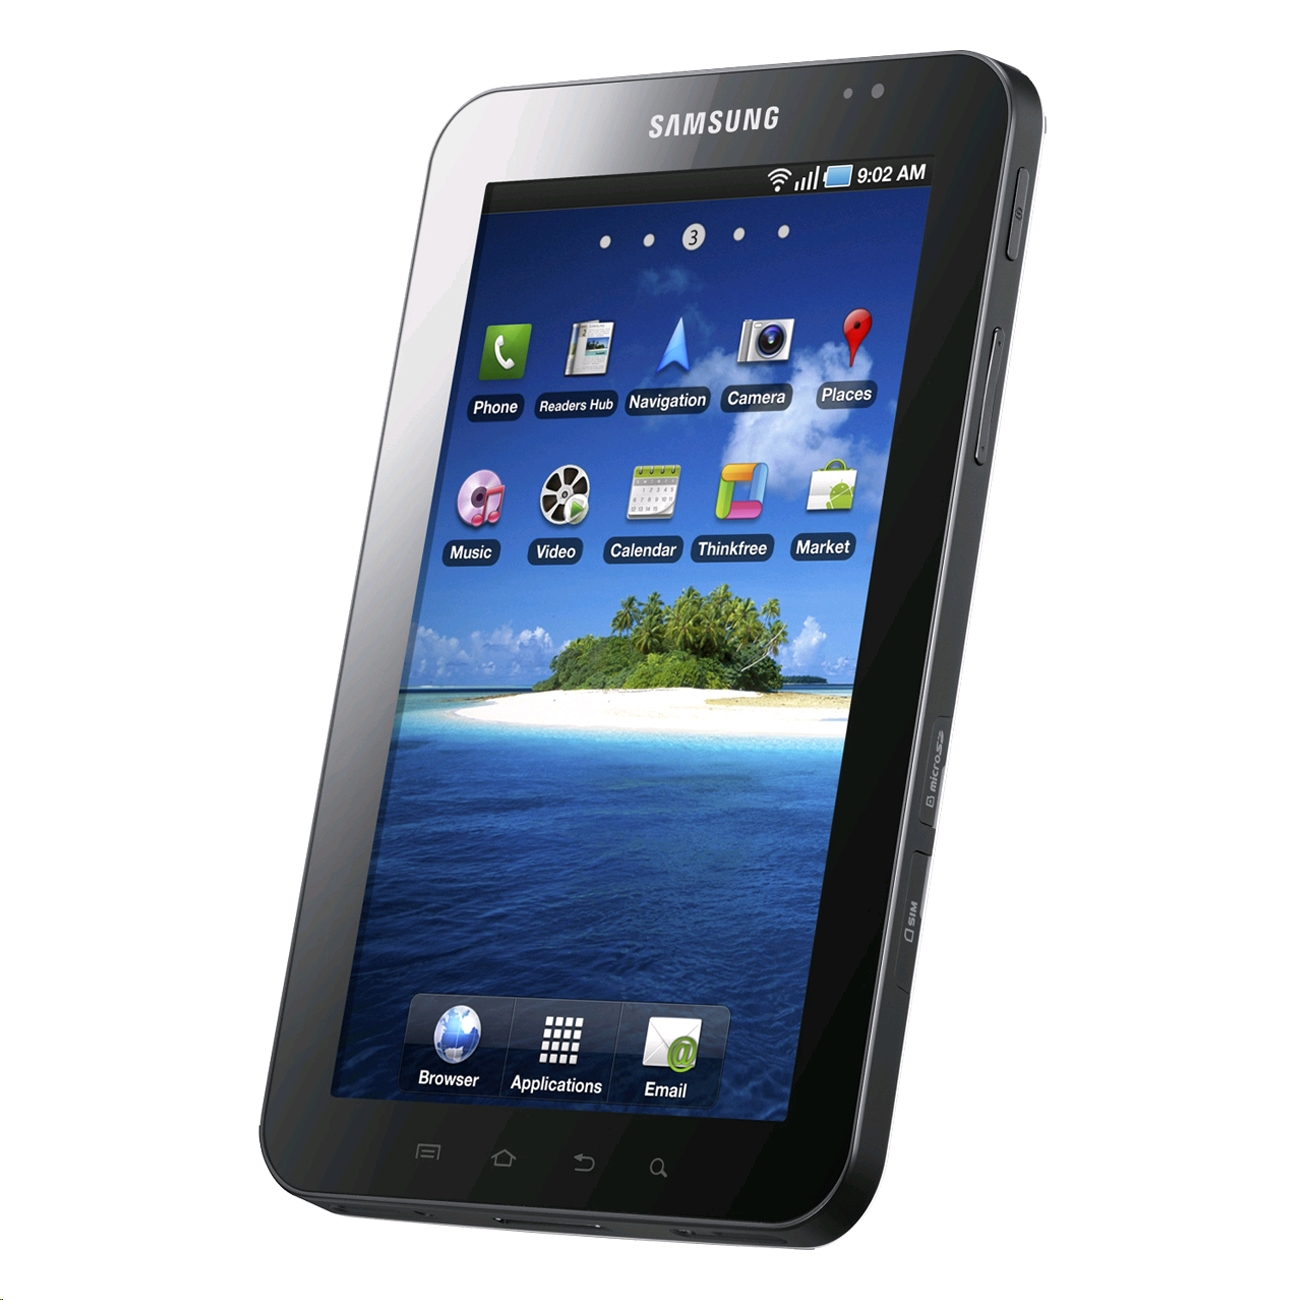 Samsung Galaxy Tab 7 Plus « John Galea's Blog